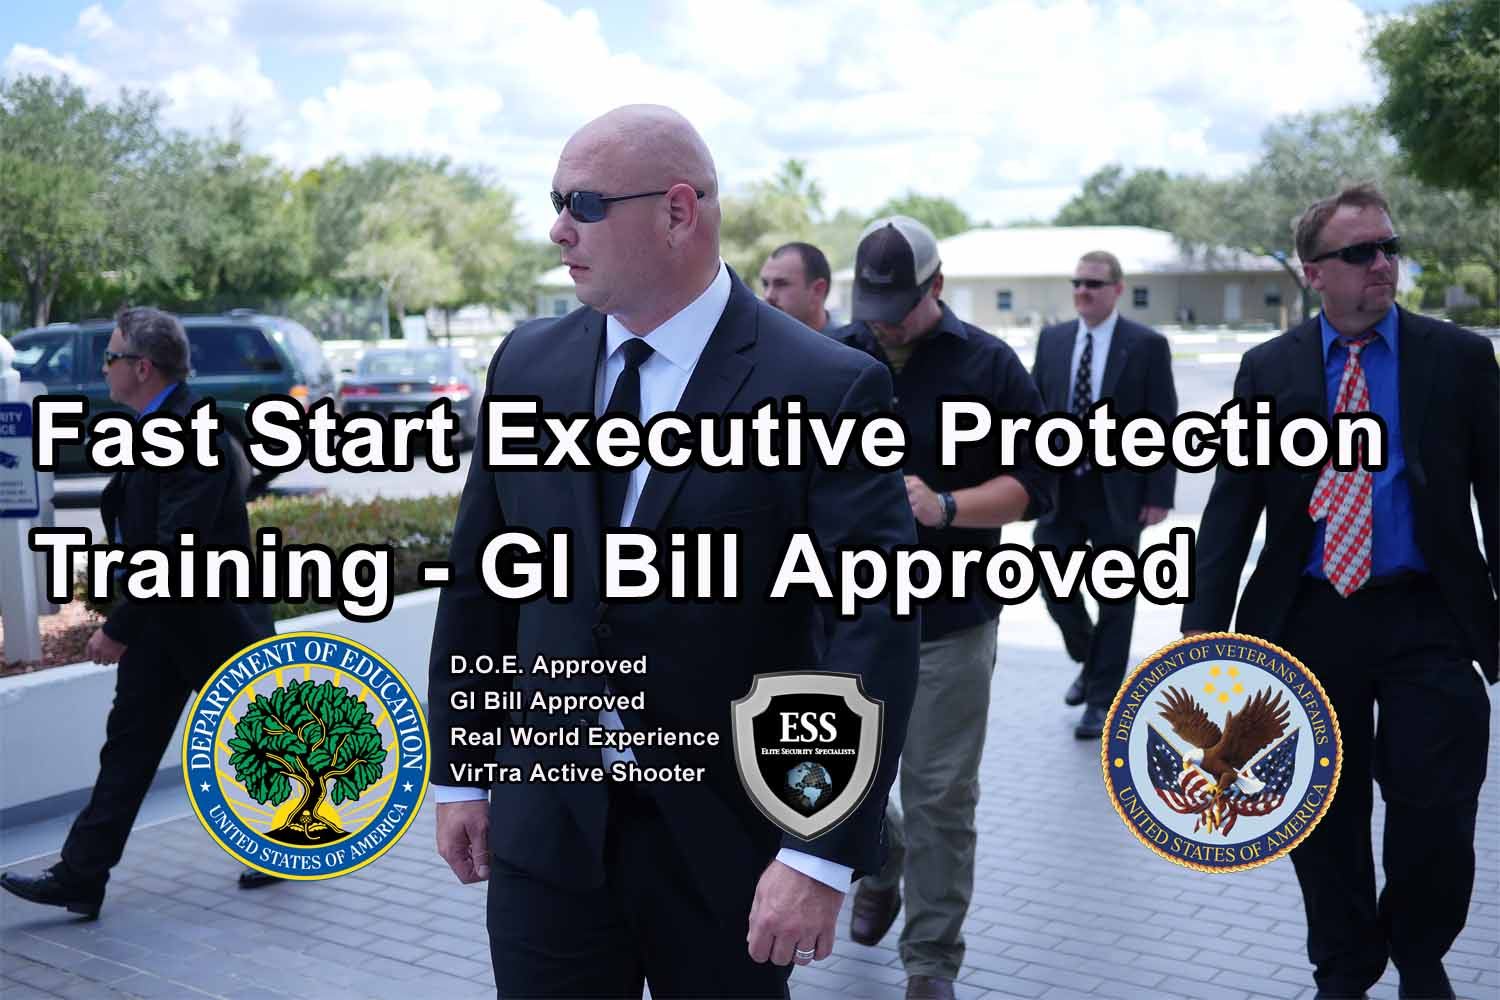 GI Bill Approved Executive Protection Training - Ohio - 3 day